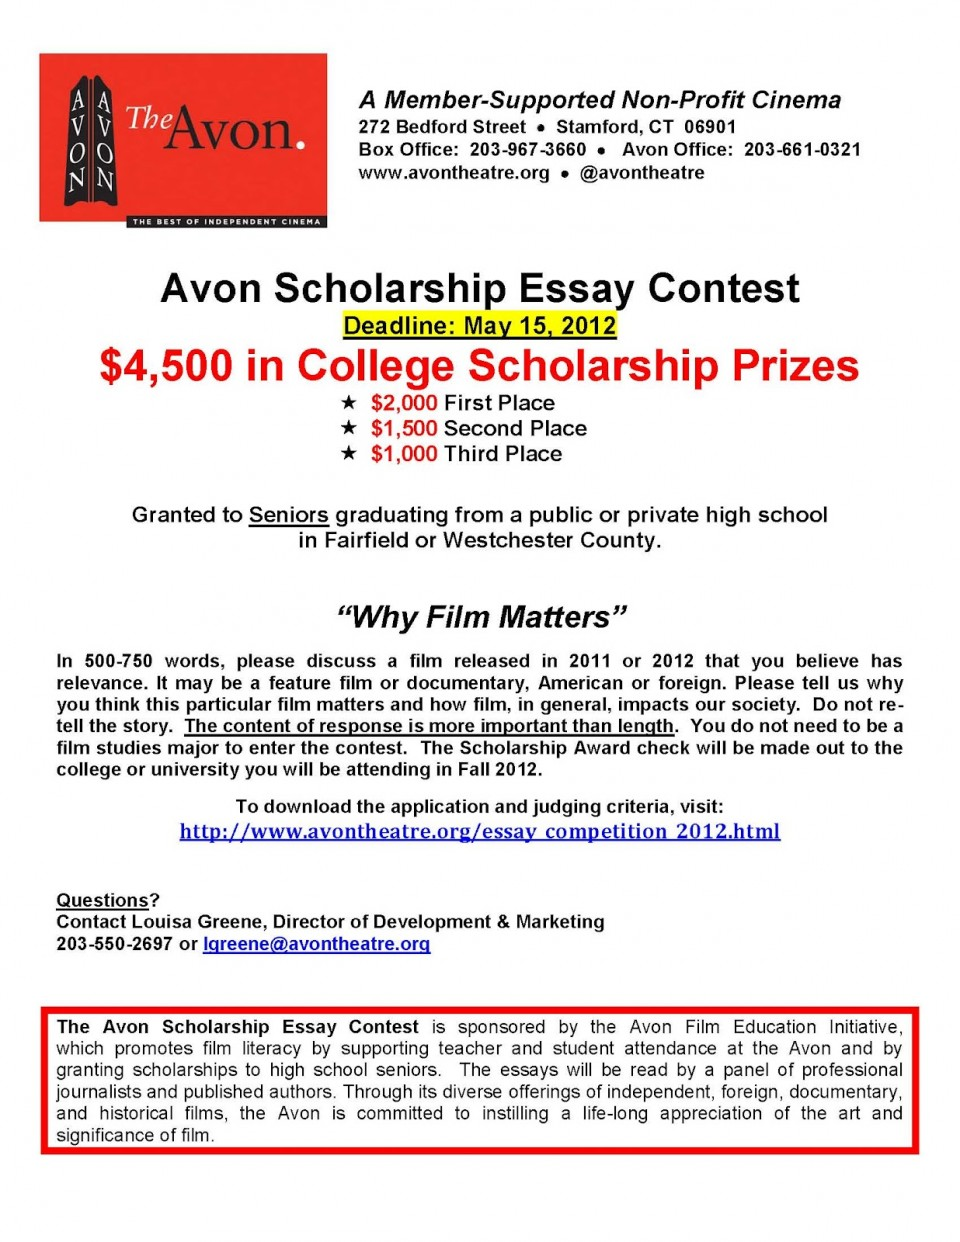 002 Essay Example No Scholarships College Scholarship Prowler Free For High School Seniors Avonscholarshipessaycontest2012 In Texas California Class Of Short Exceptional Undergraduates Students 2019 960